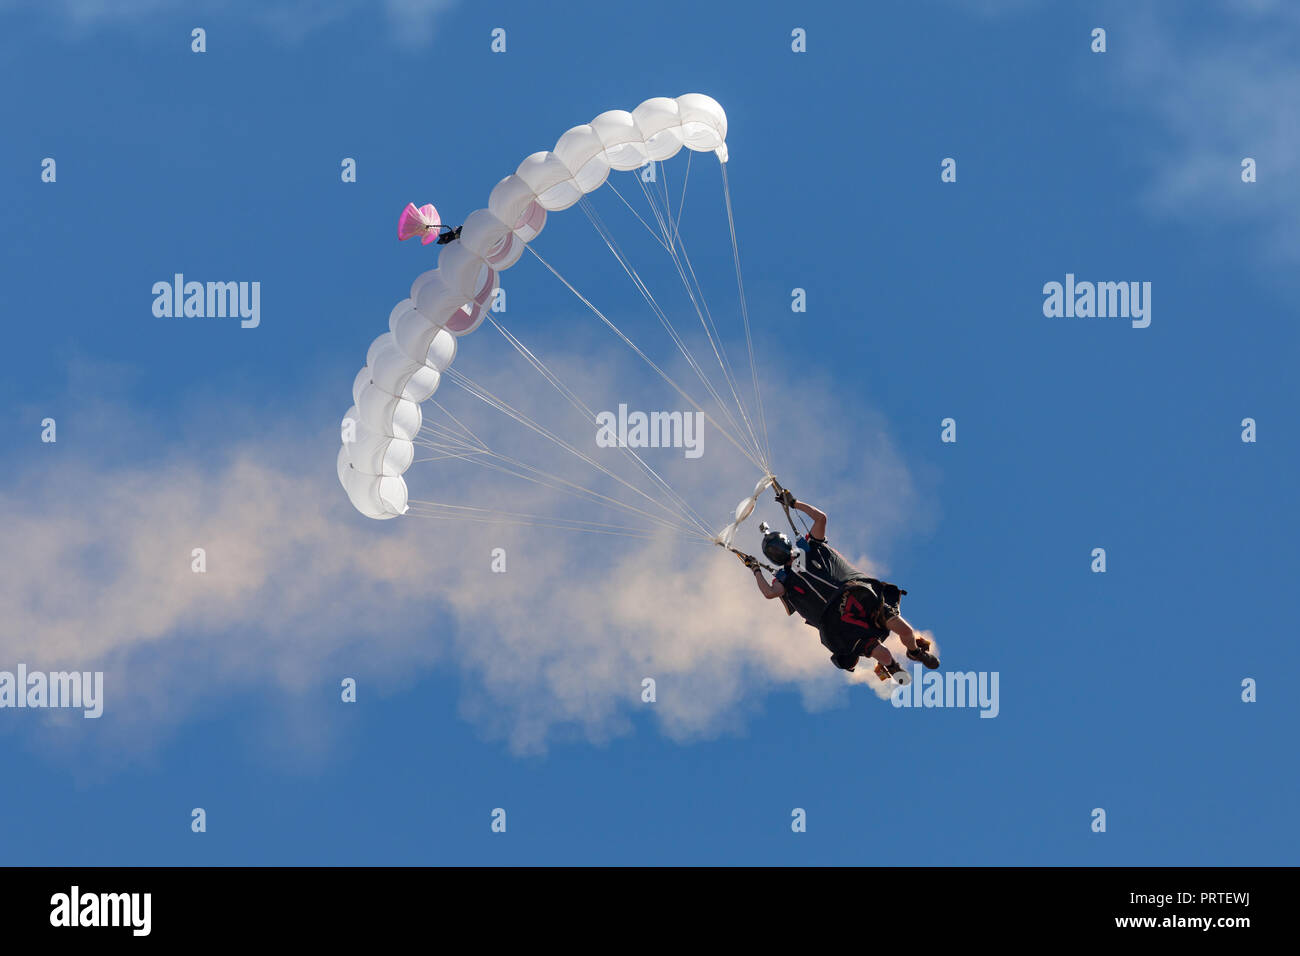 Australian adventurer and wing suit flyer Rex Pemberton parachutes to earth after a wing suit flight. - Stock Image